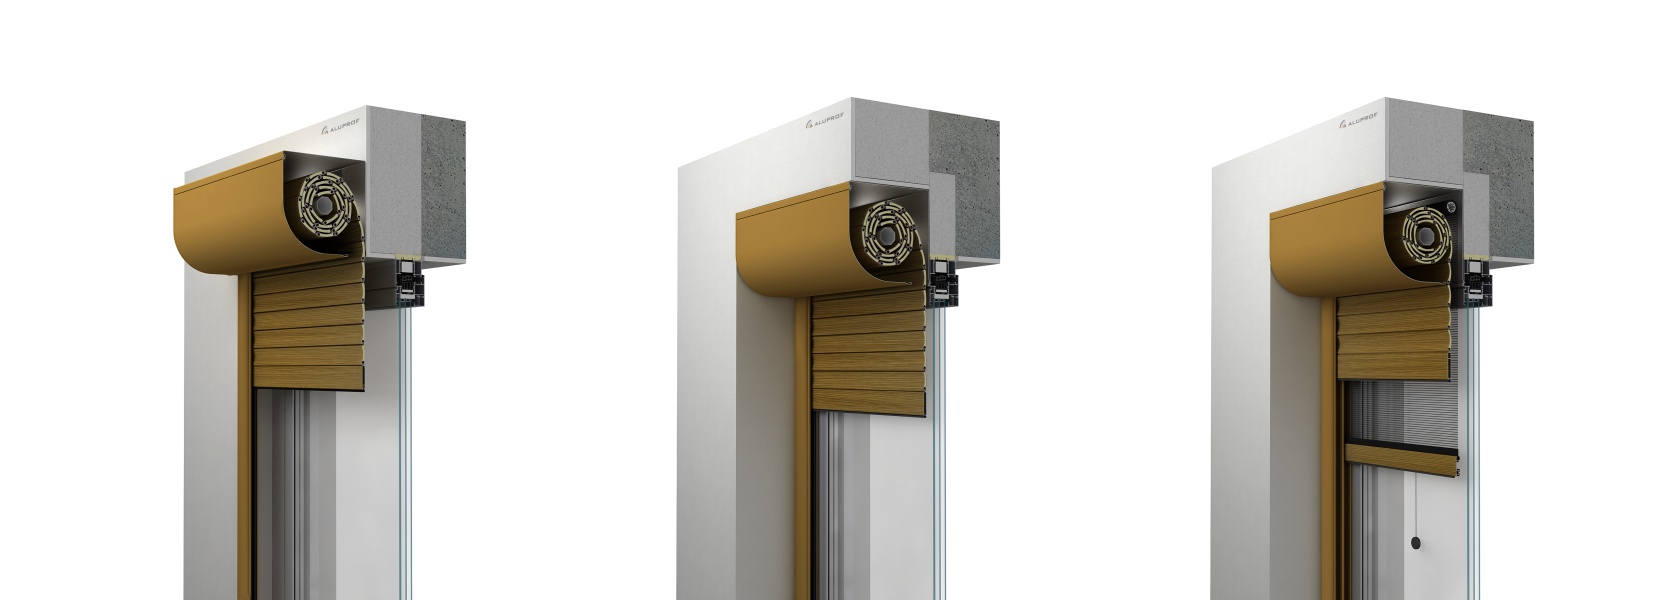 Front-mounted Aluprof roller shutters